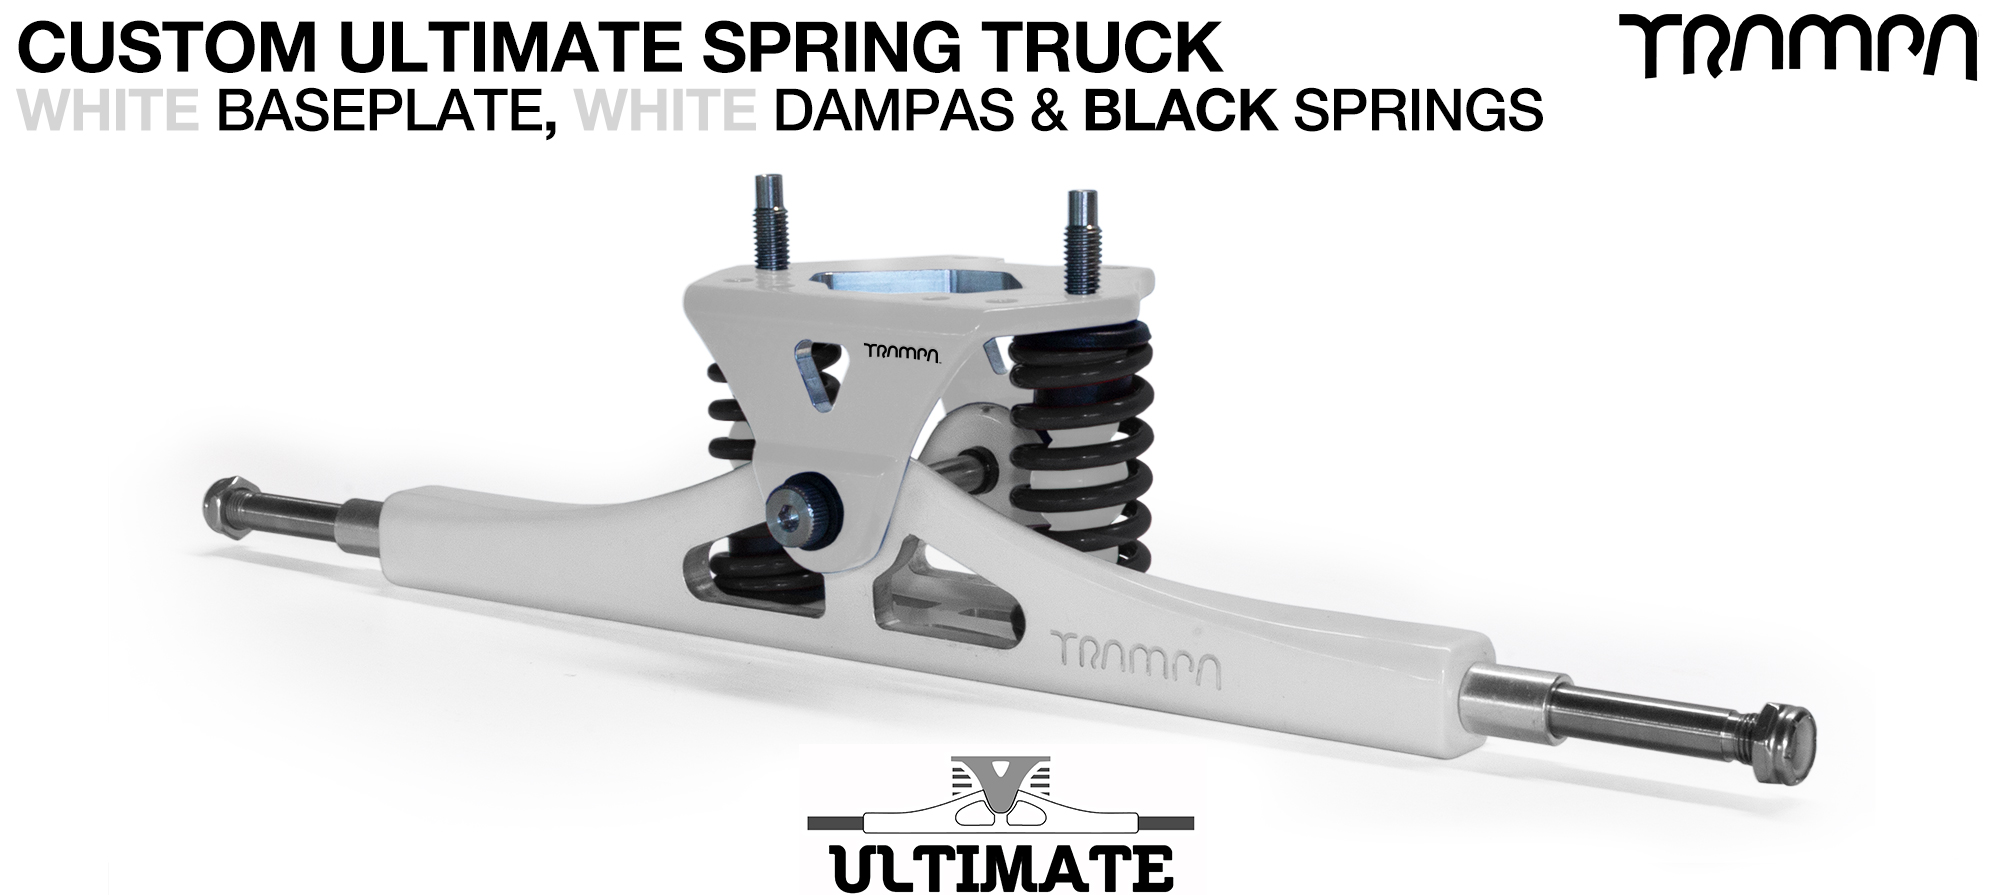 ULTIMATE Truck - WHITE & BLACK logo Baseplate on White TITANIUM Axles & Kingpin